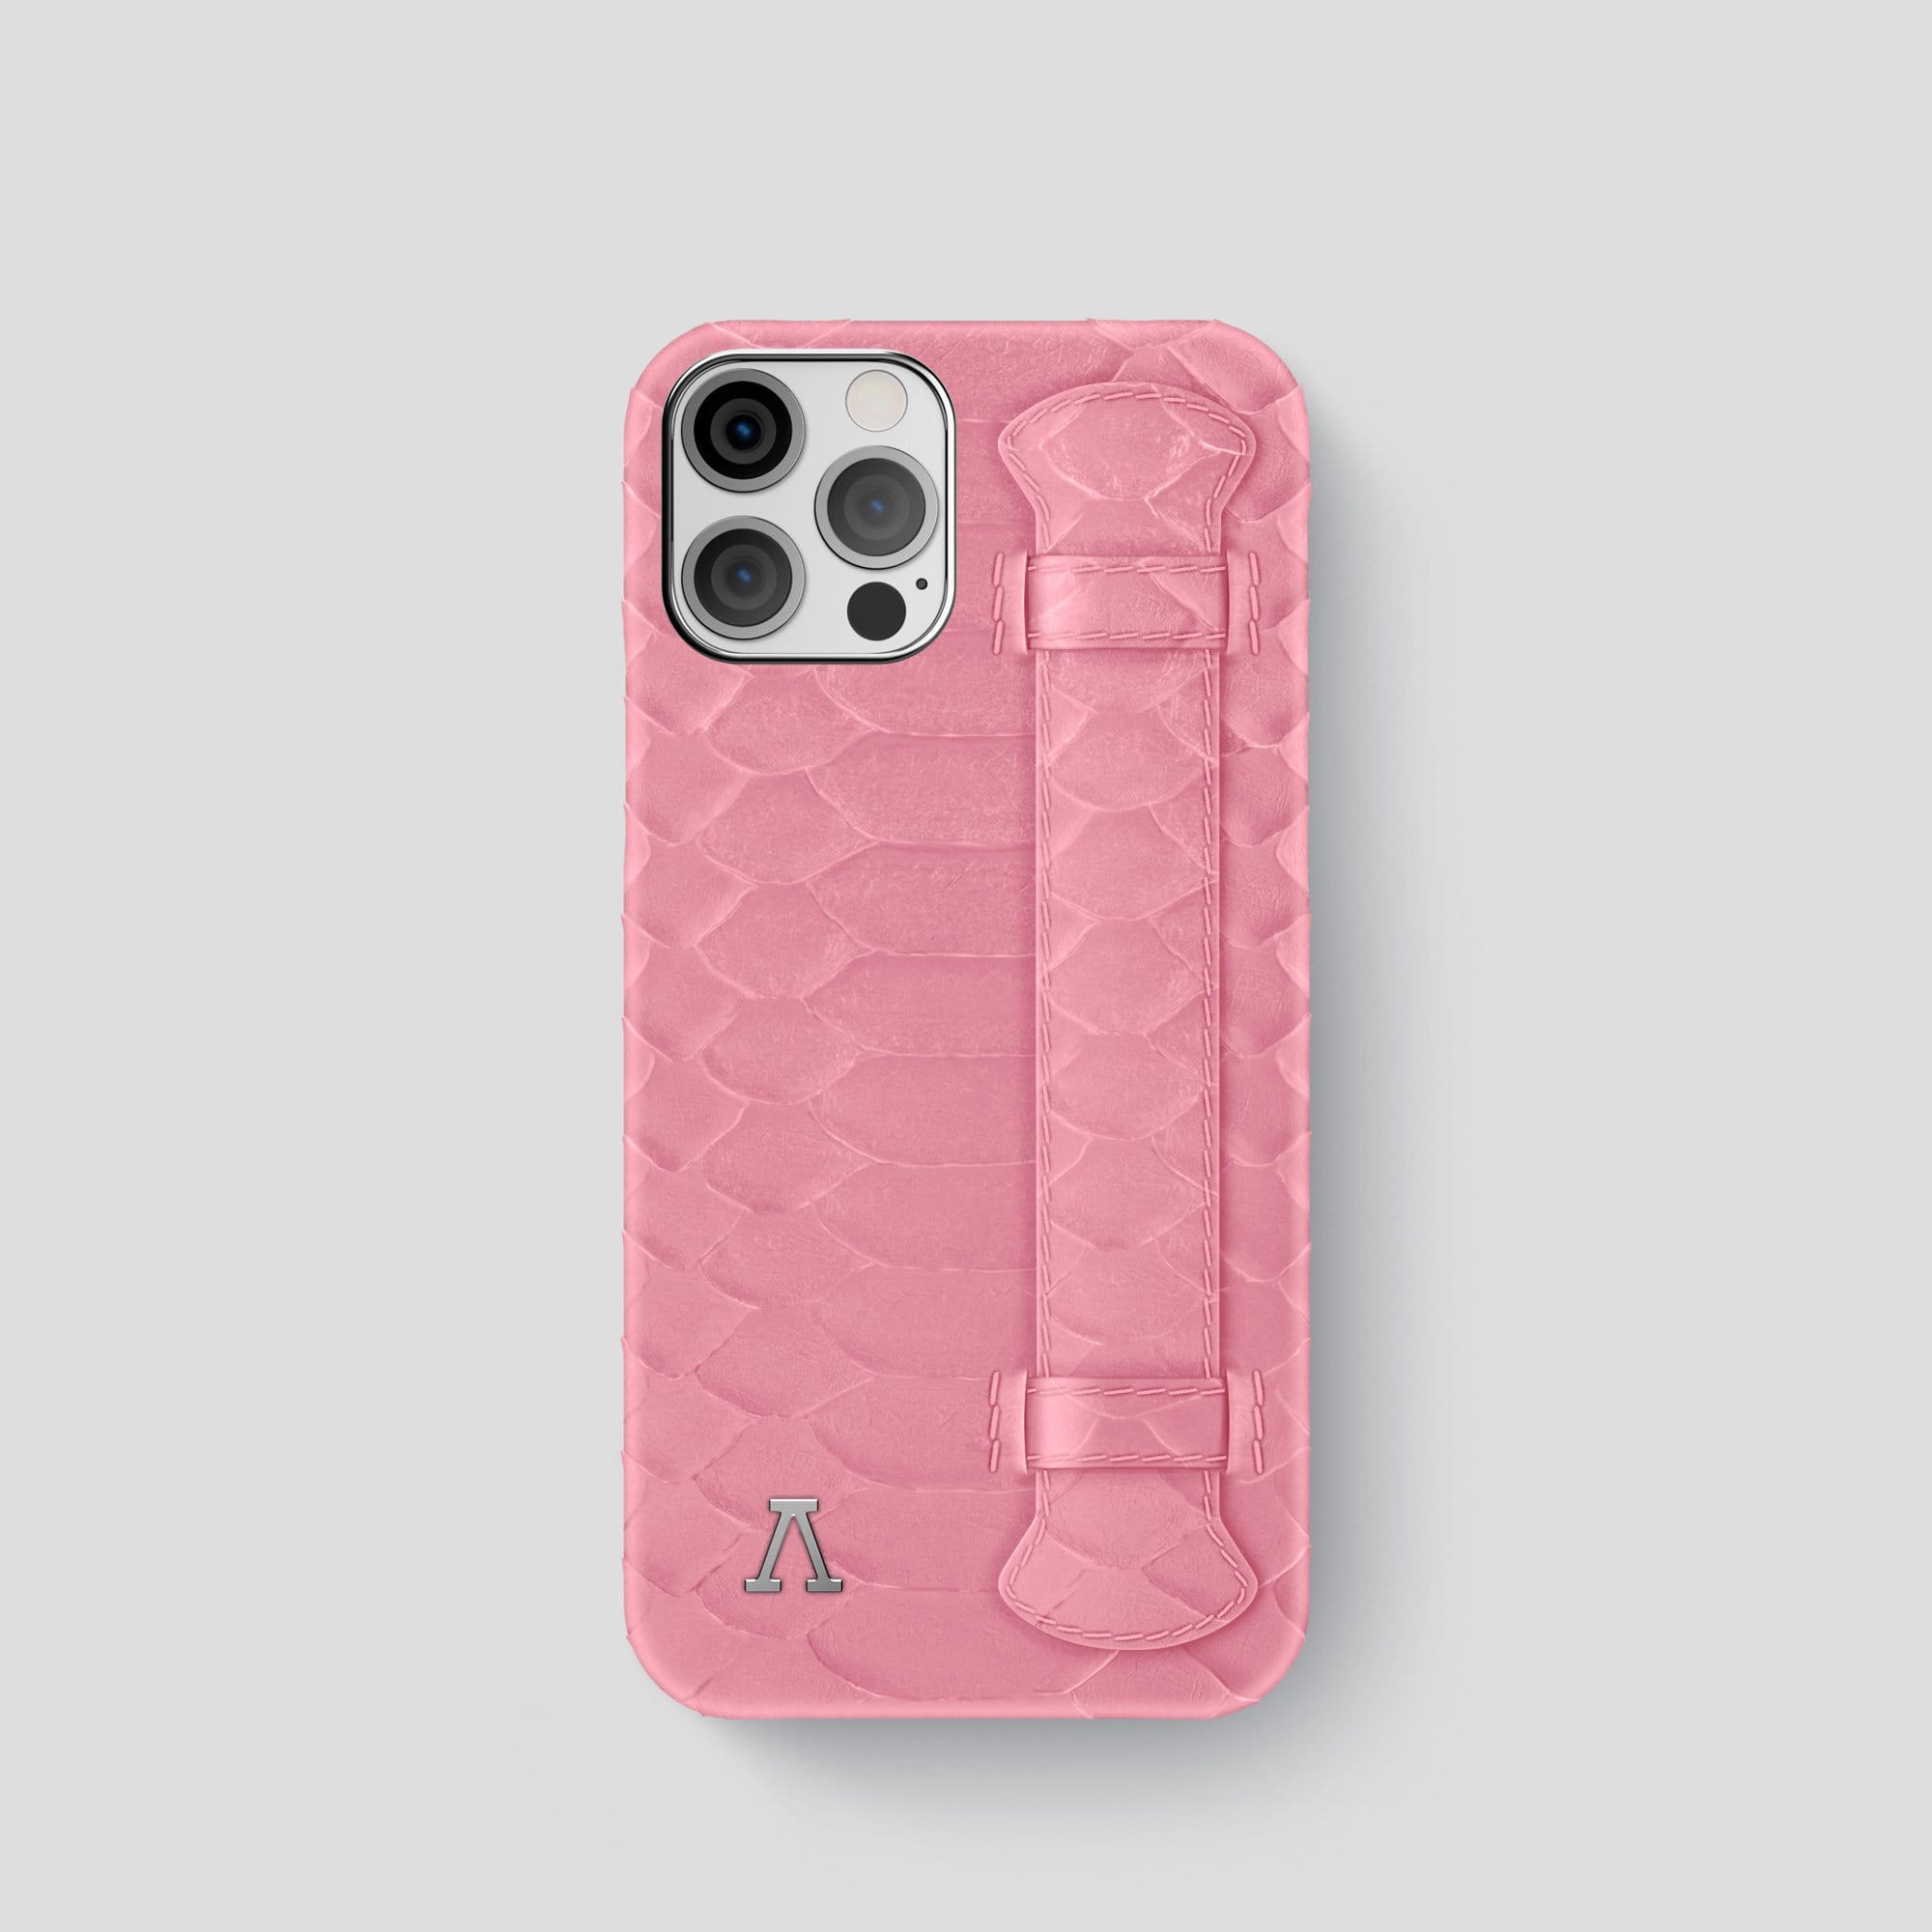 iPhone 12 Pro Strap Case Python